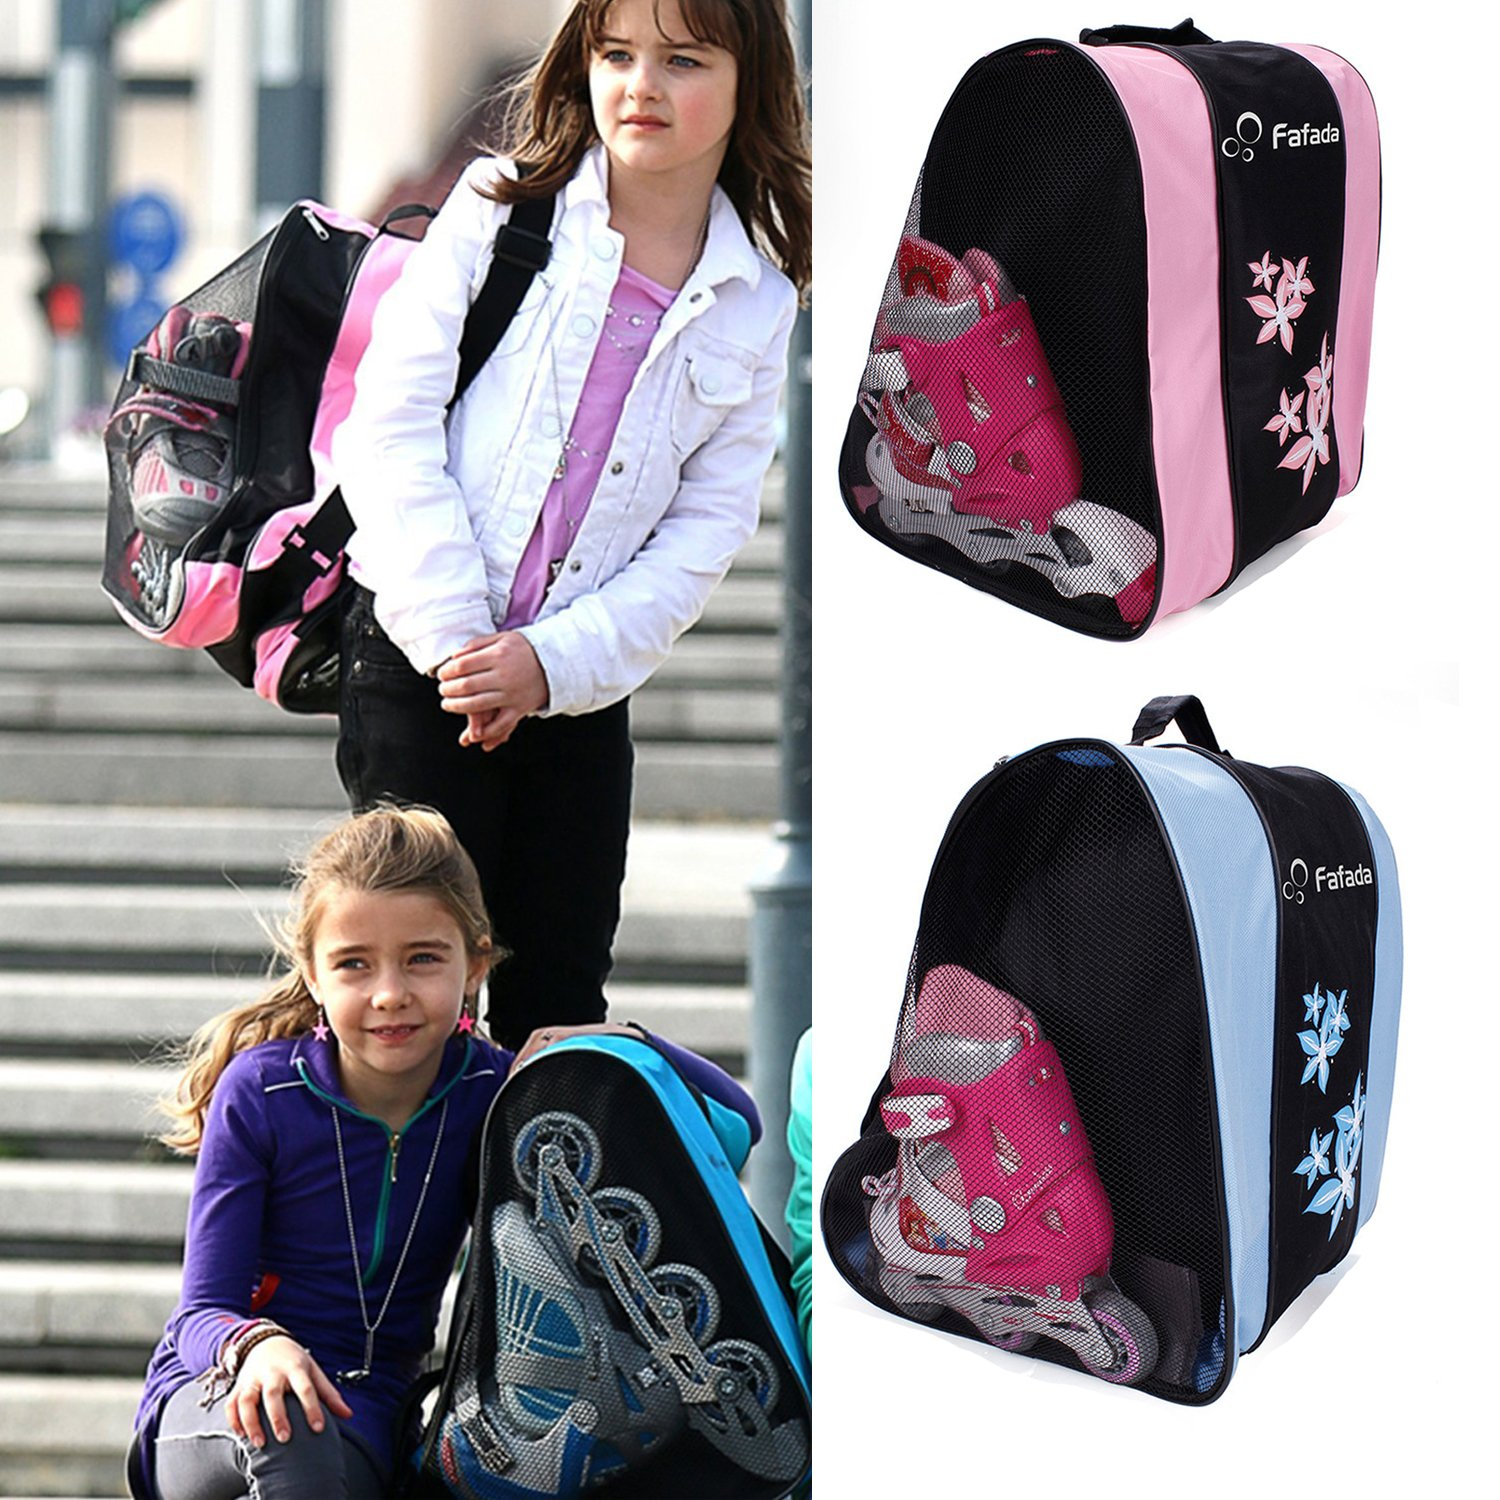 Fafada Ice Skating Bag Inline Skate Bag, skate bag,Roller Skates Bag, ice skate bag,Sports Deluxe Skate Bag Ultima Bag for Ice Skating Bag for Ice Skating for Both Kids and Adults